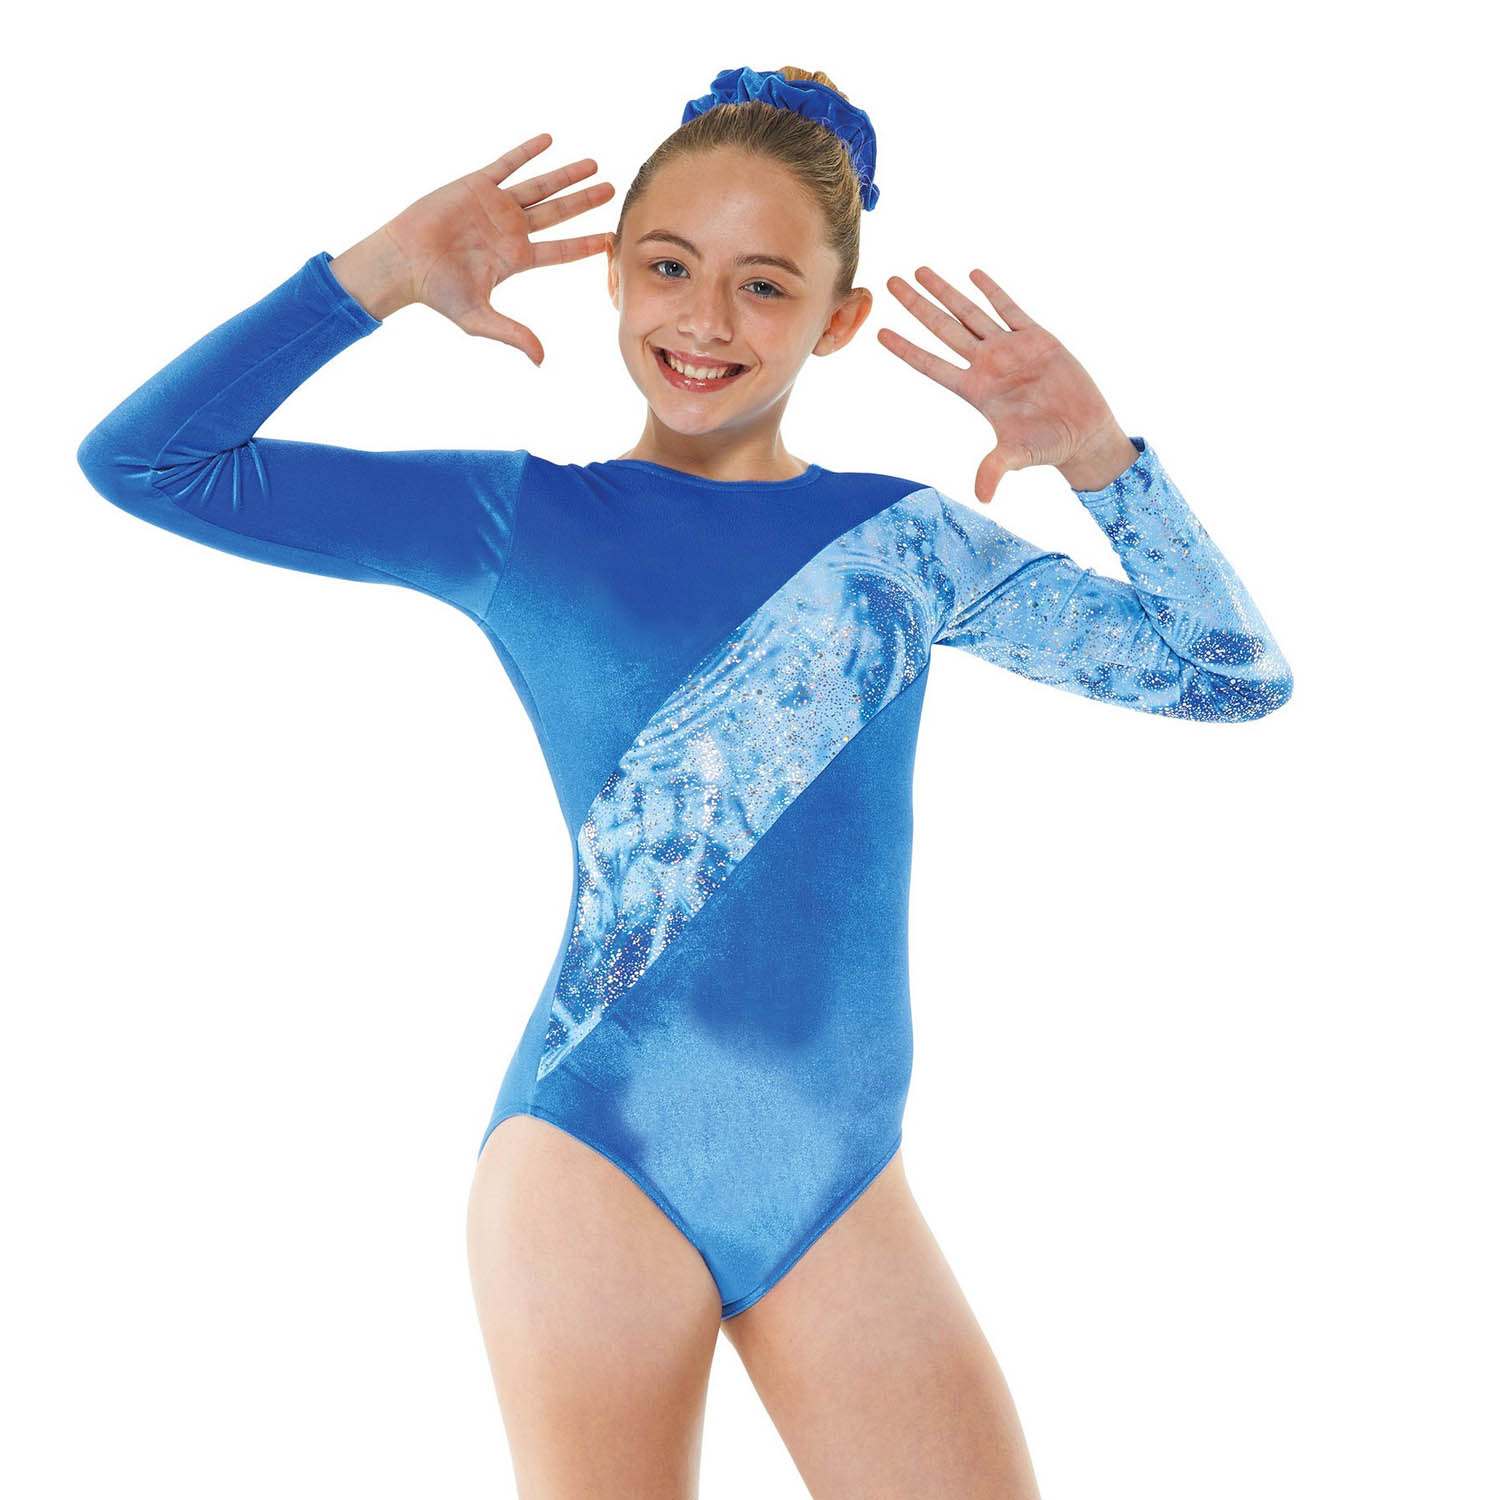 Gym 7 Royal & Silver Hologram Foil on Blue Strobe Gmnnastic Leotard